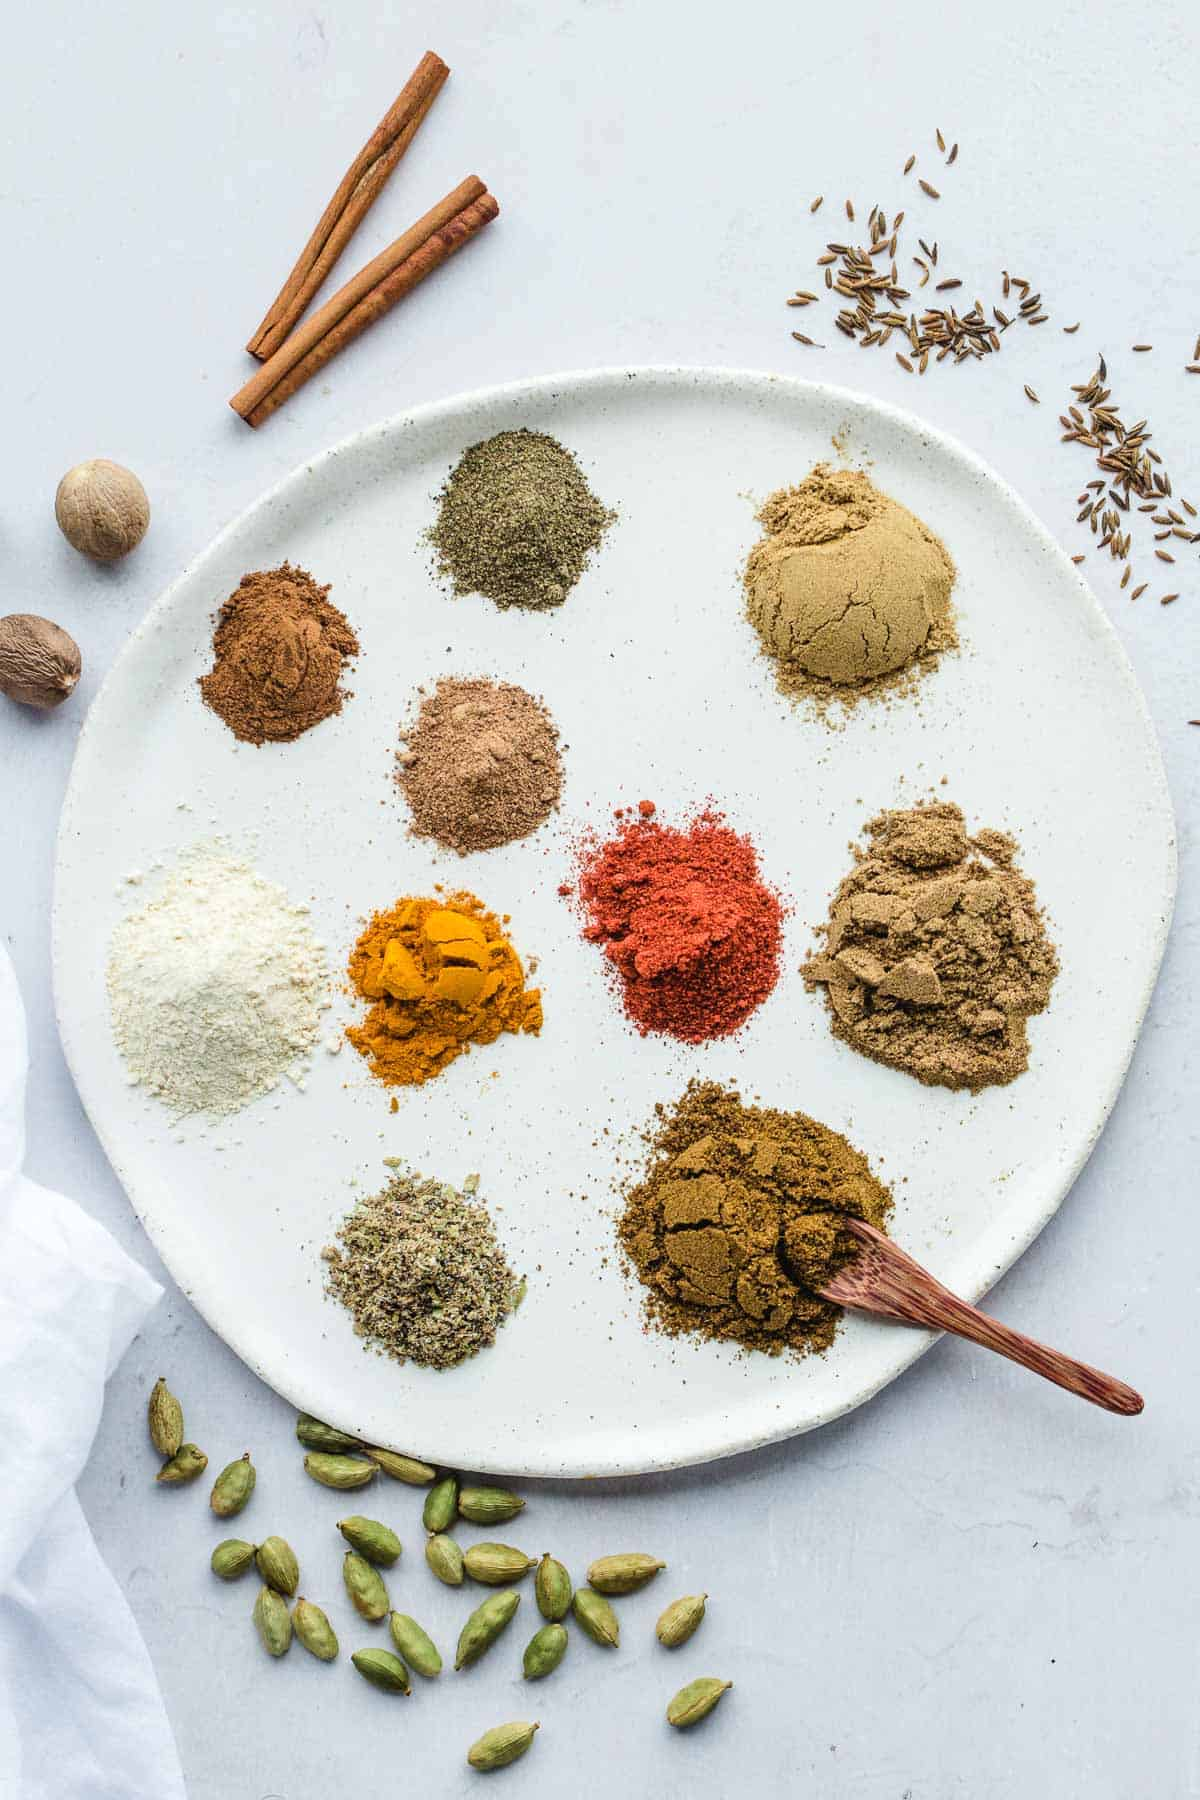 All the ground spices laid out of a round ceramic white tray, along with whole spices on the sides, and a small wooden spoon